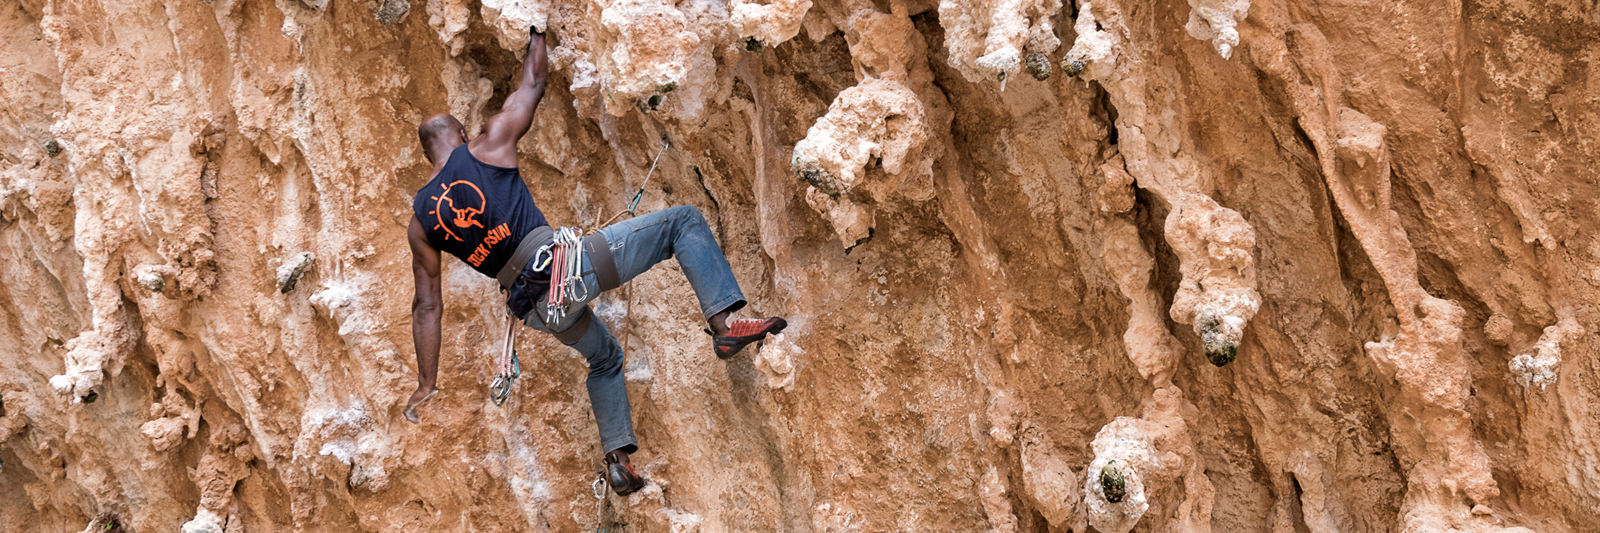 Rock and Sun Rock Climbing Holidays Rock Climbing Courses Homepage Section 5 Background Image 1600x533